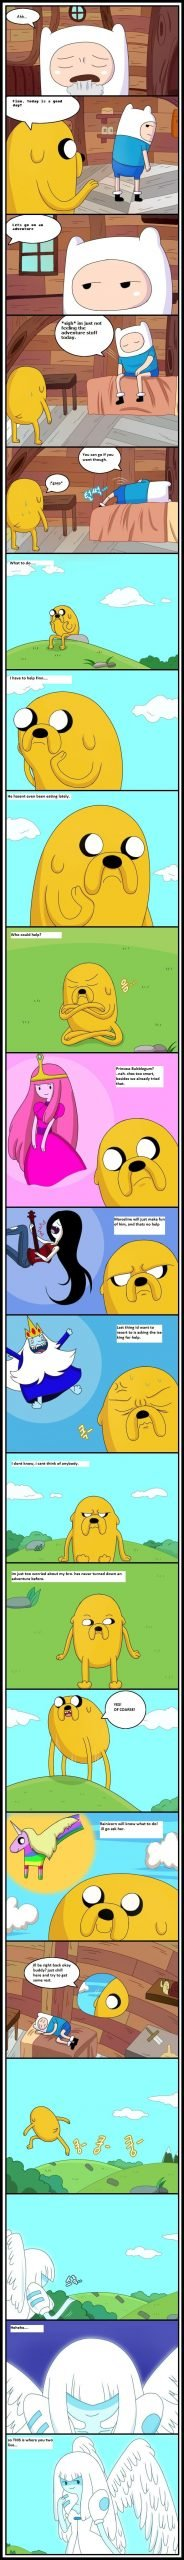 Adult Time 3 Adventure Time 01